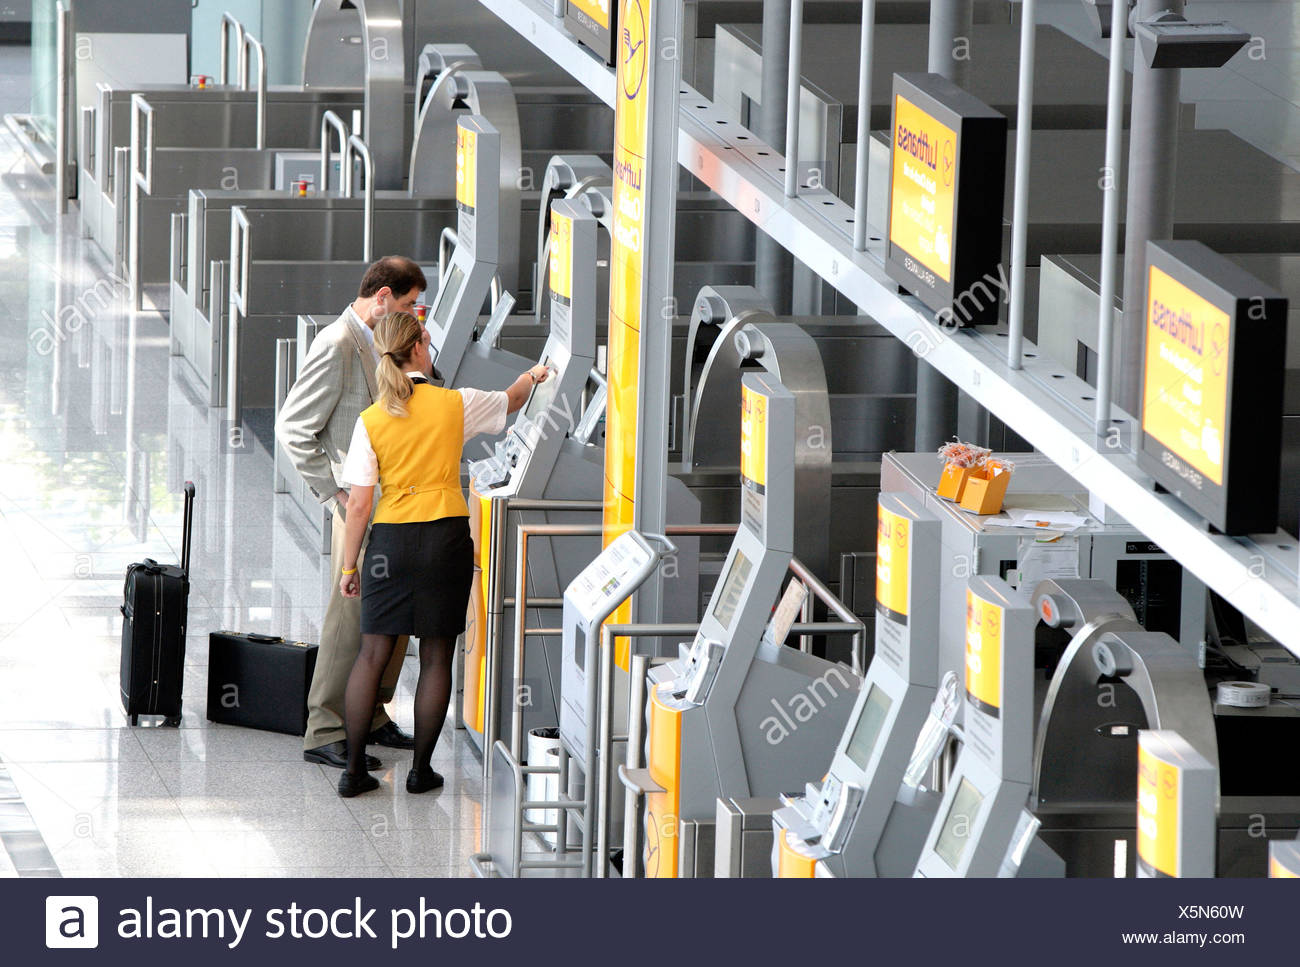 Lufthansa employee explaining to a passenger the Quick-Check-in-Terminal of Lufthansa, Terminal 2 of Munich Airport, Franz-Jose - Stock Image